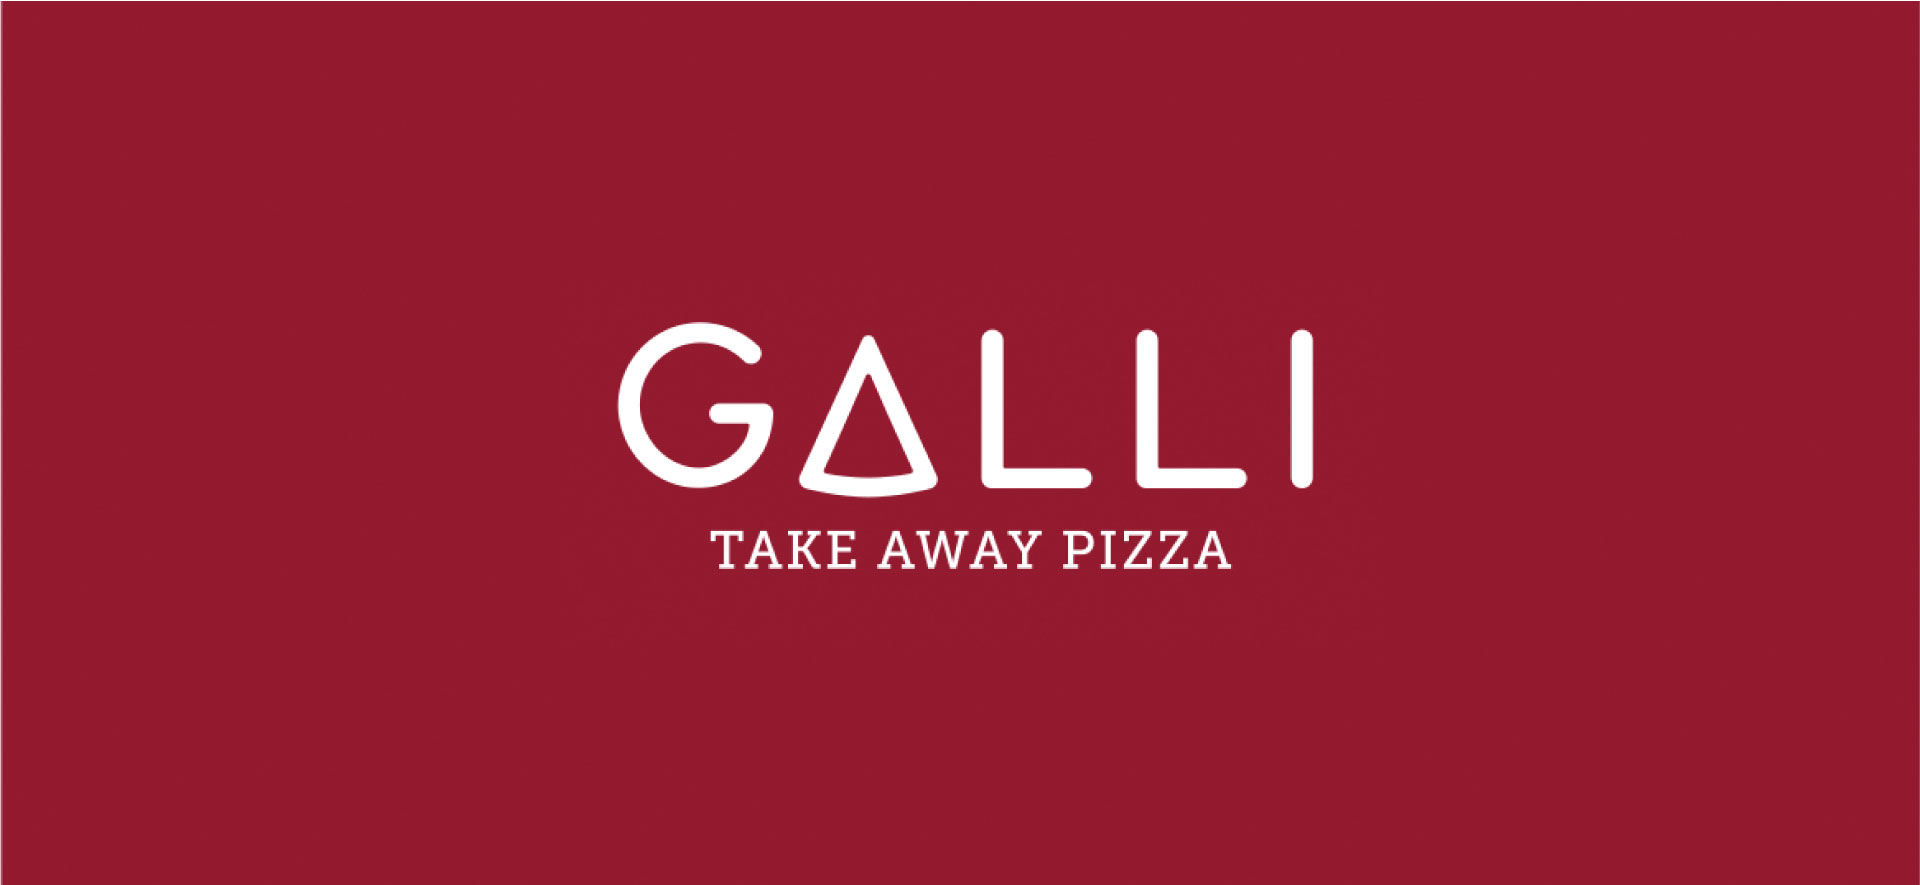 01-Galli-pizza-logo